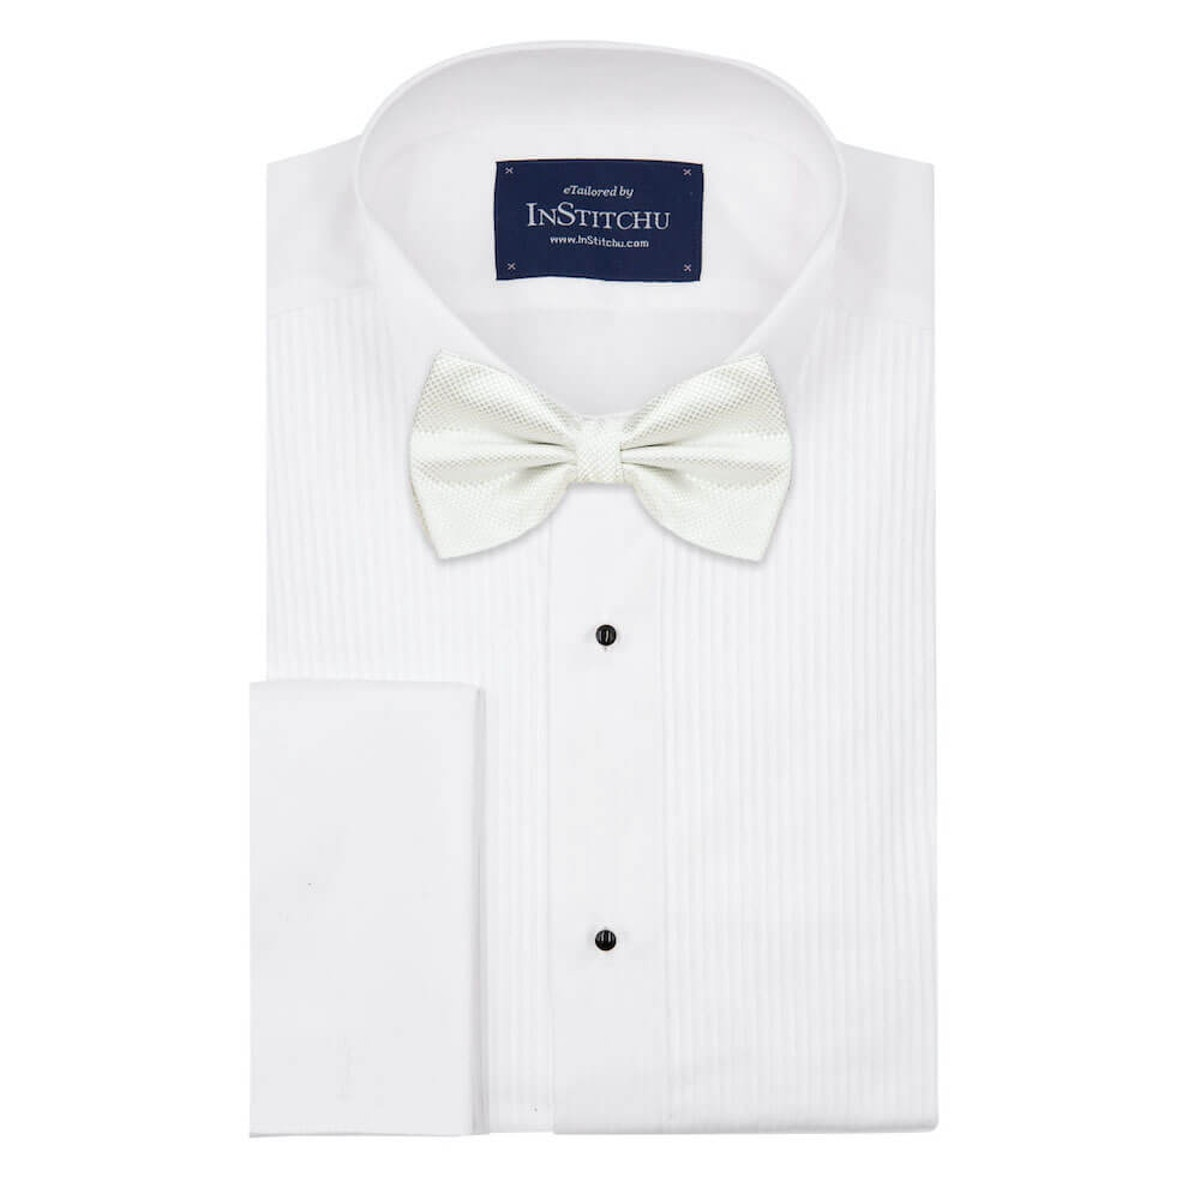 InStitchu Accessories bow-tie The Wolfe White Satin Bow Tie on shirt